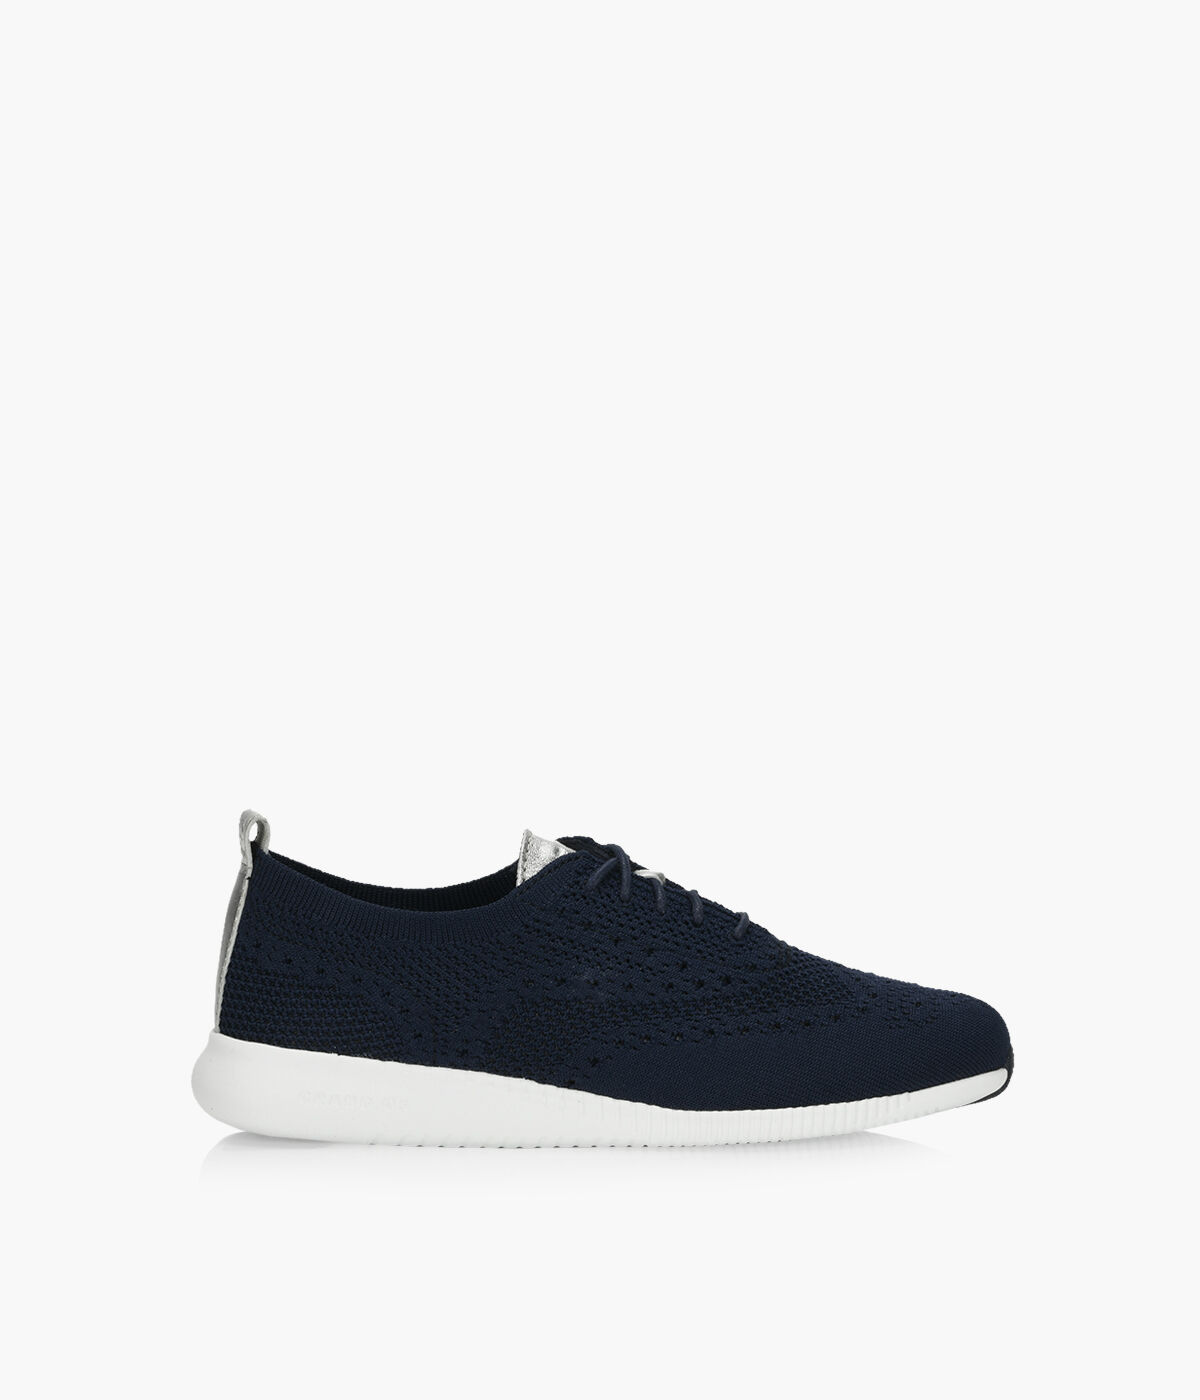 COLE HAAN for Women   Browns Shoes